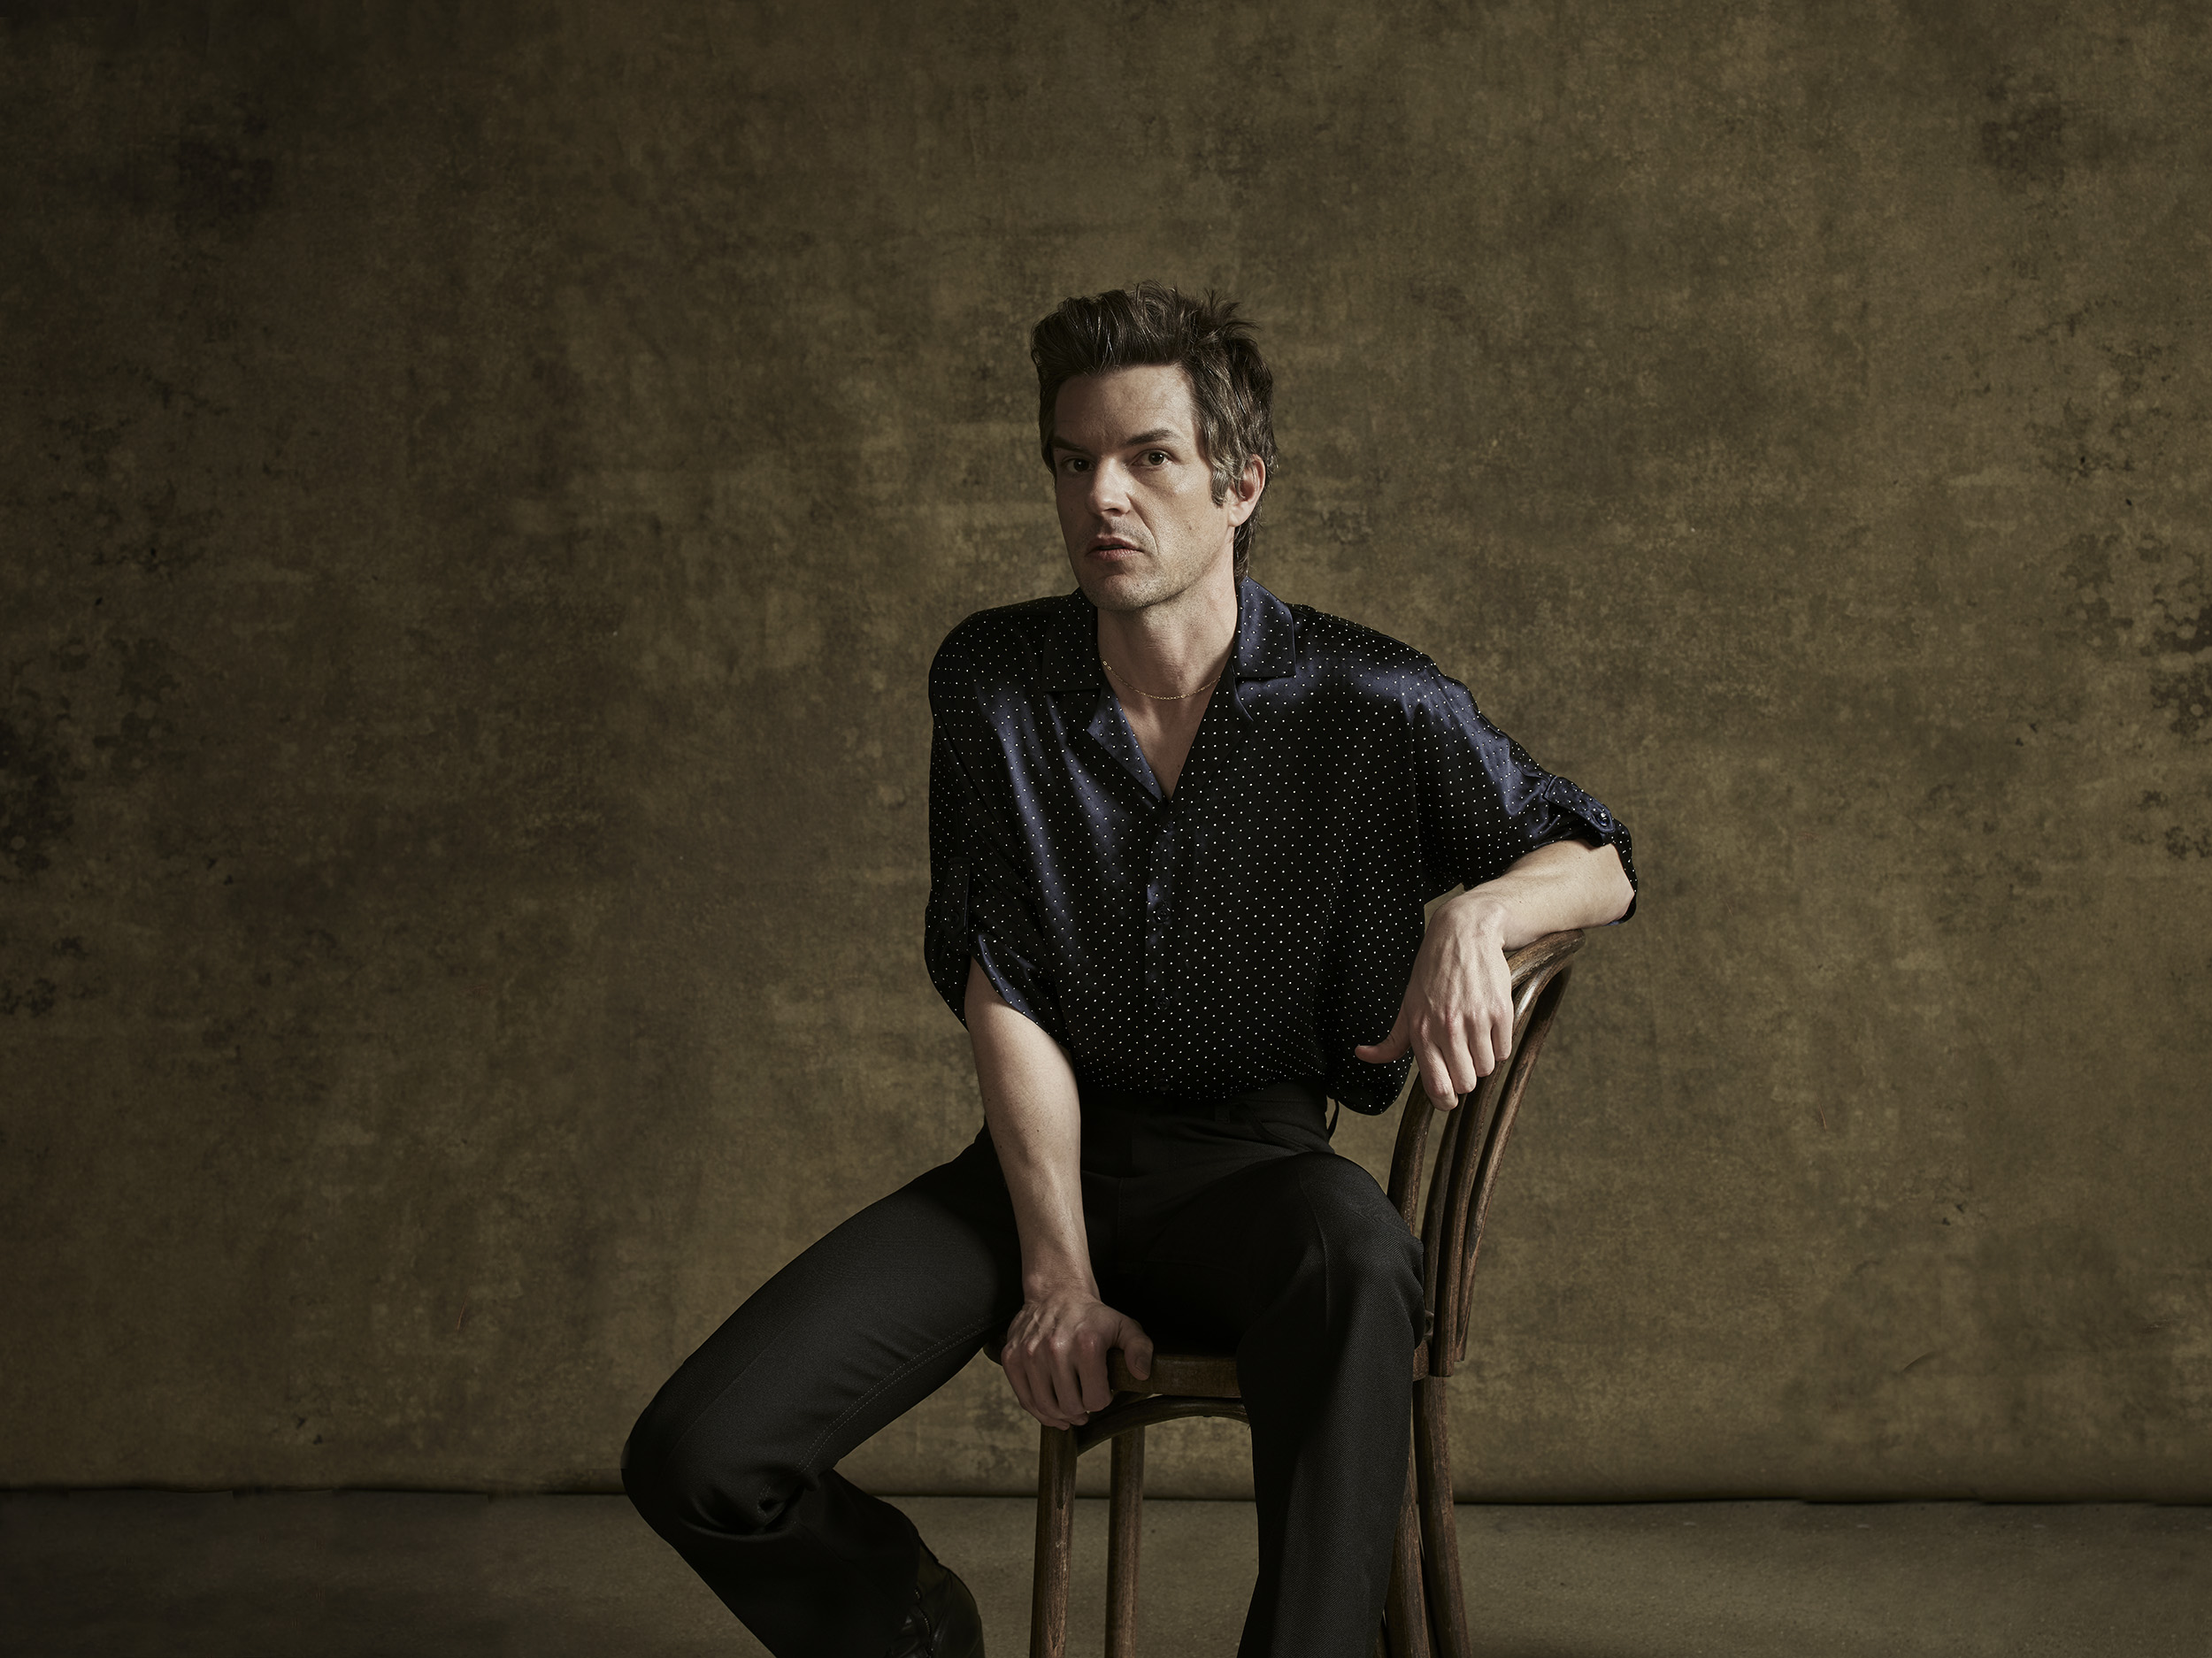 Brandon-Flowers-by-Robert-Ascroft